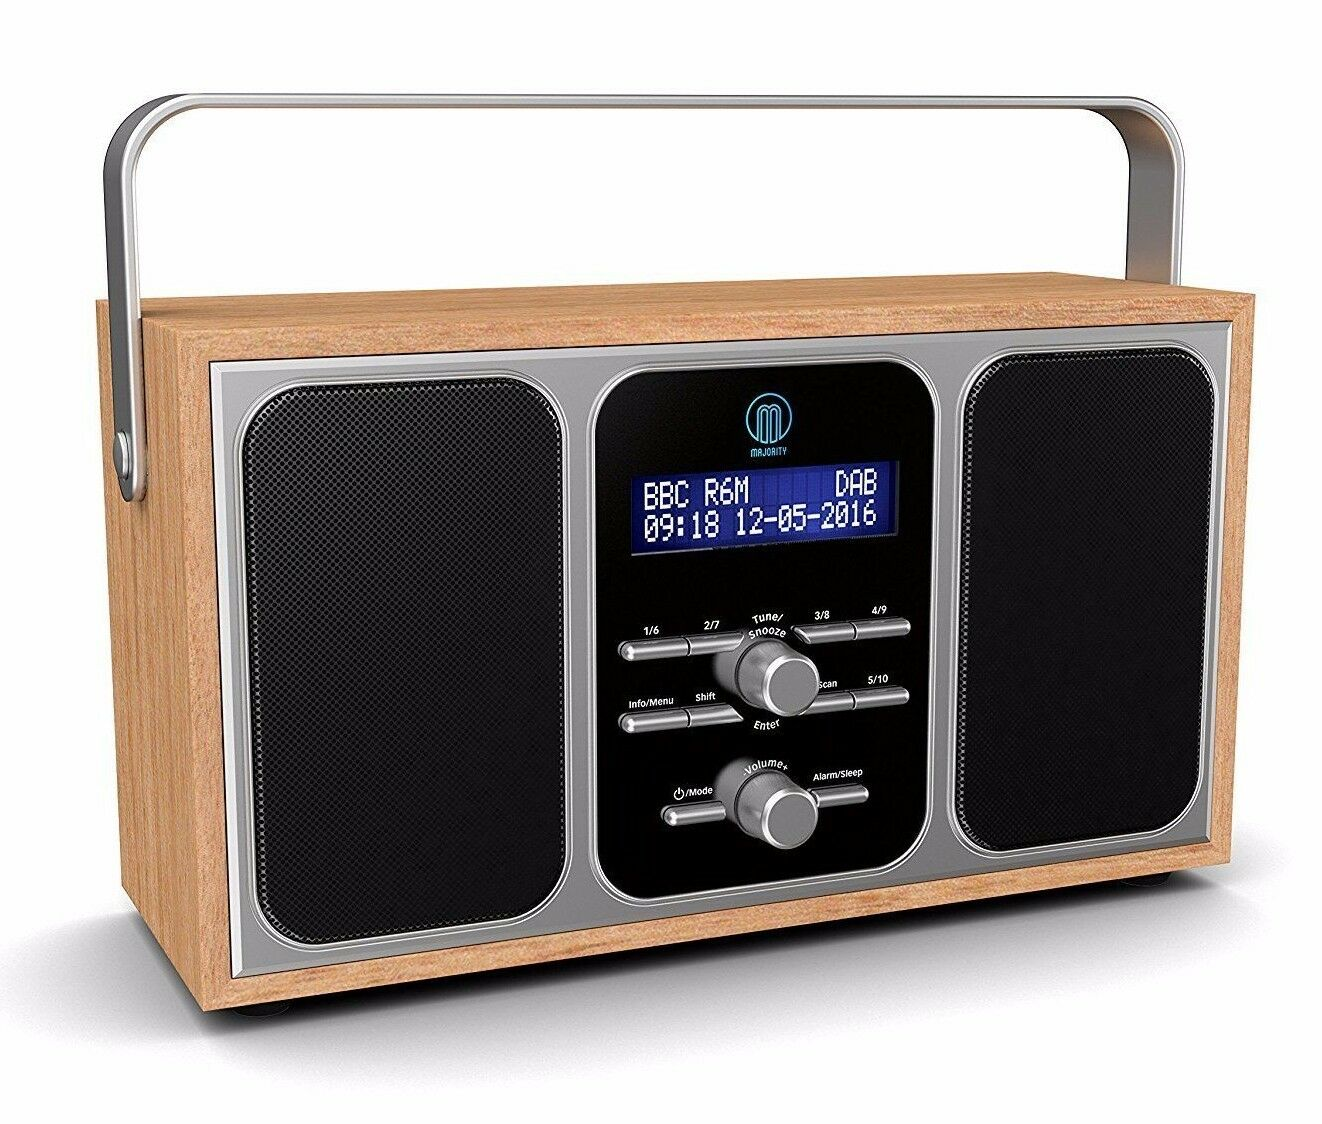 majority girton stereo dab dab fm digital portable radio alarm clock wooden portable radios. Black Bedroom Furniture Sets. Home Design Ideas